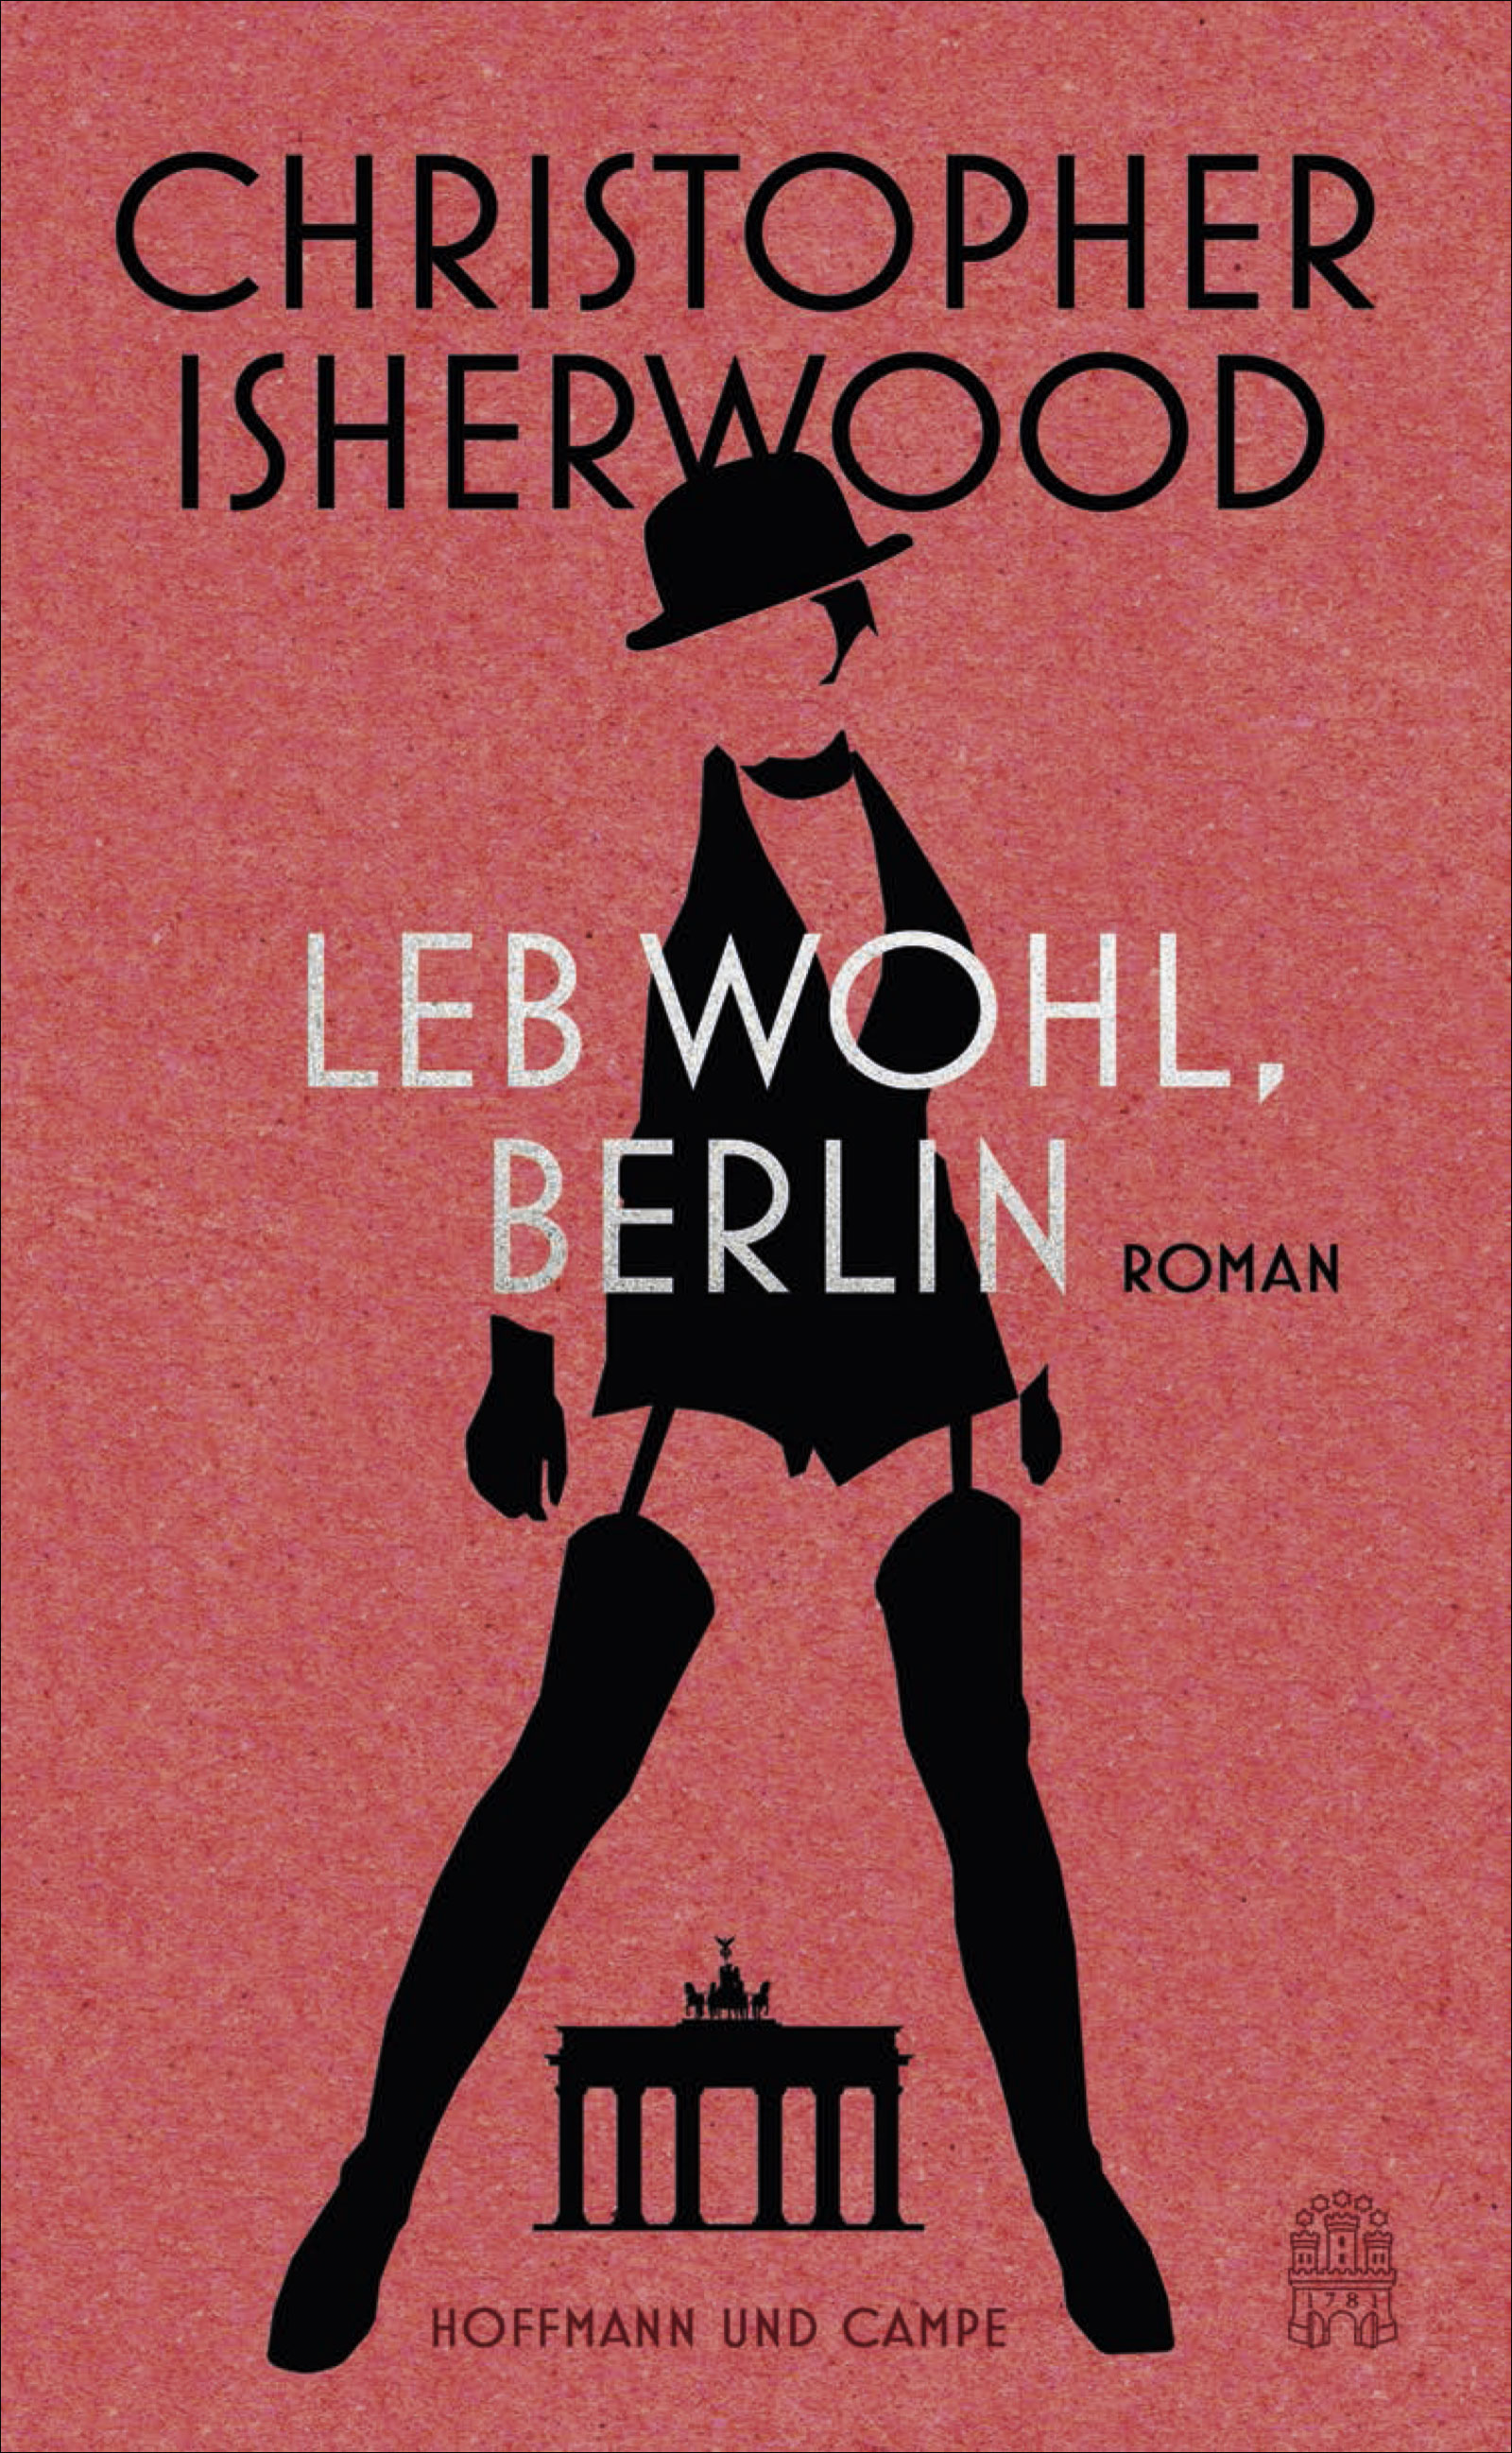 Leb wohl, Berlin - Isherwood, Christopher